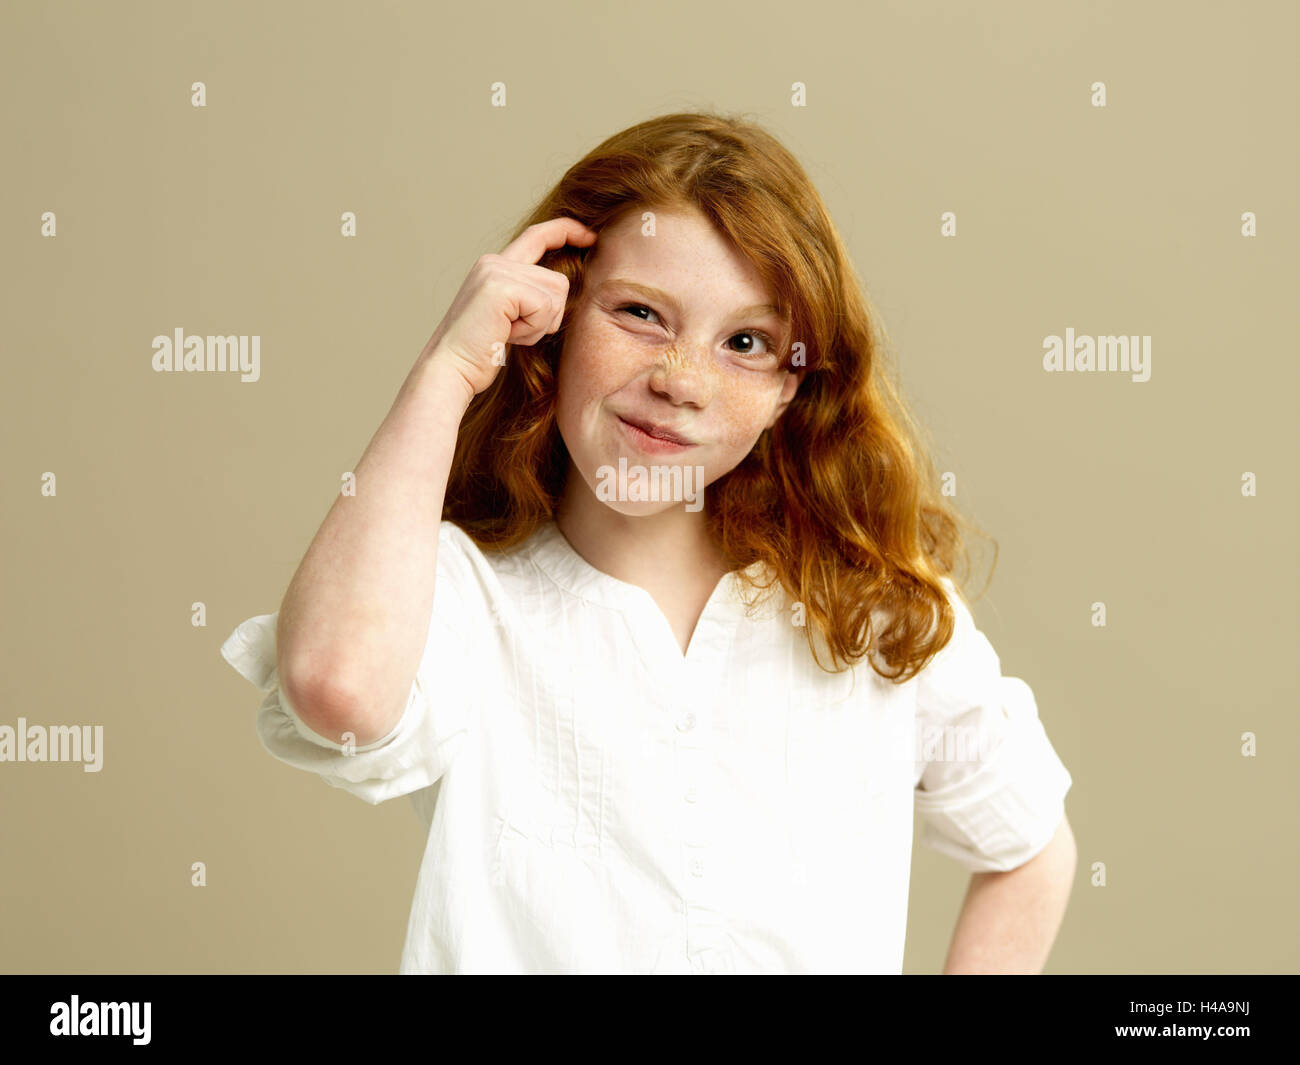 Girls, red-haired, gesture, thoughtfully, portrait, child, long-haired, blouse, shirt, freckles, brood, doubt undecided, - Stock Image